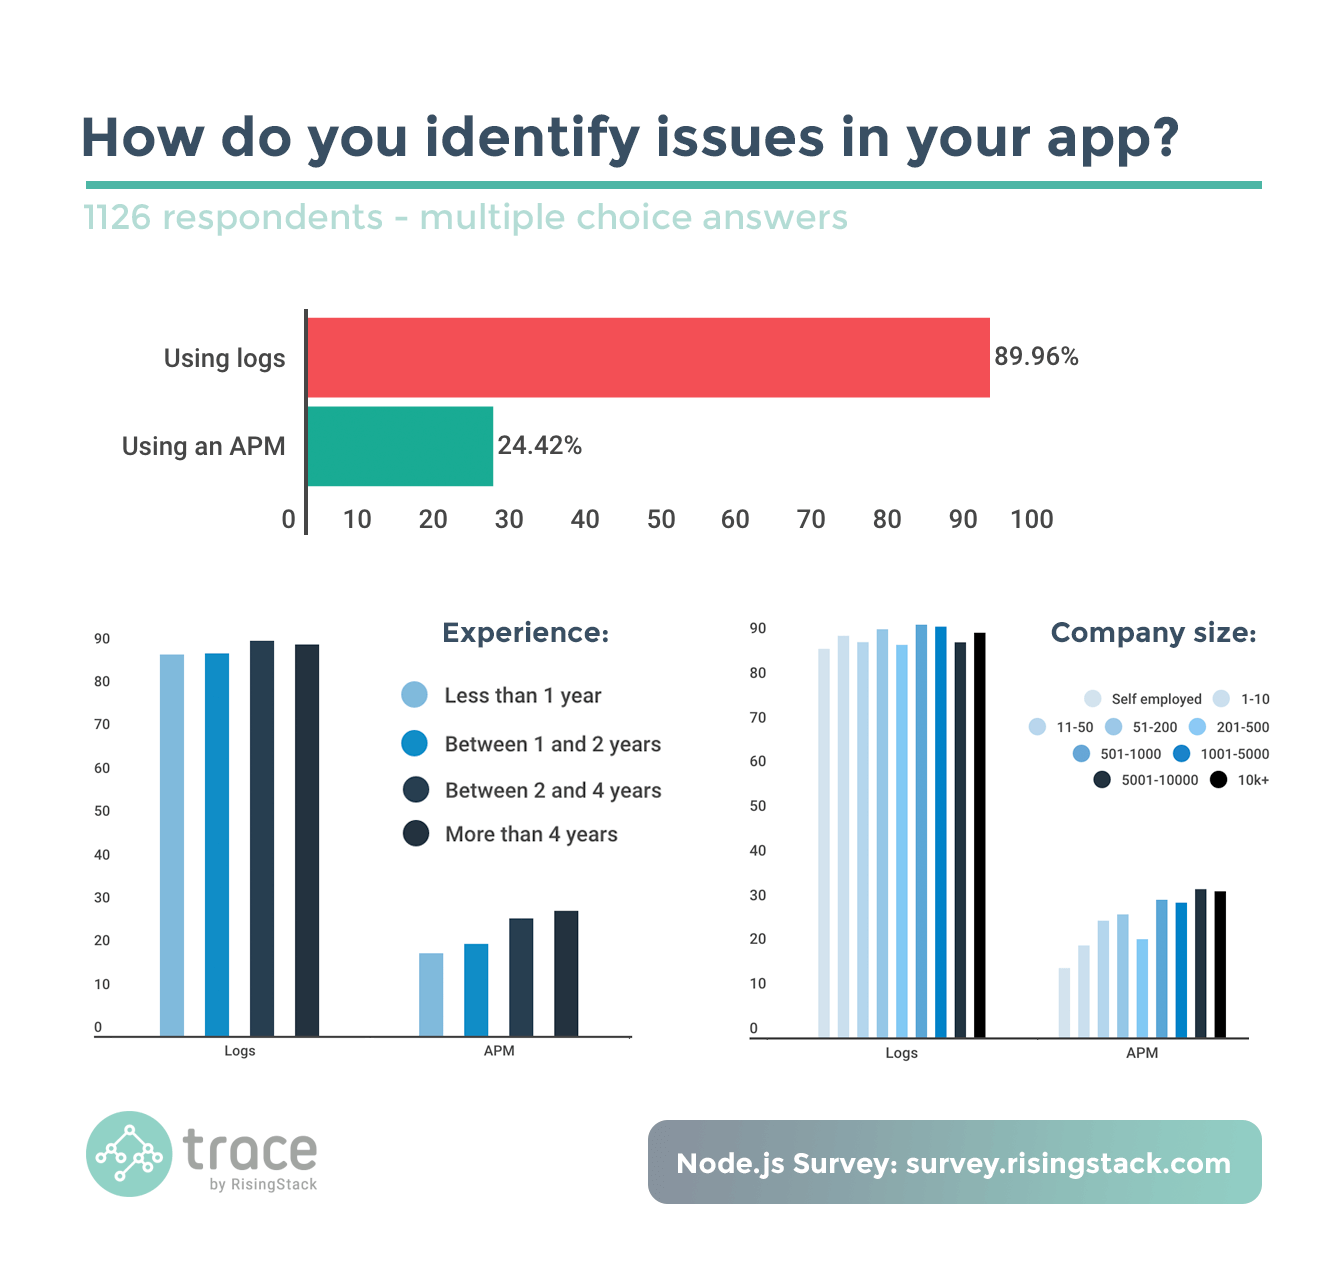 Node.js Survey - How do you identify issues in your app? Using logs.